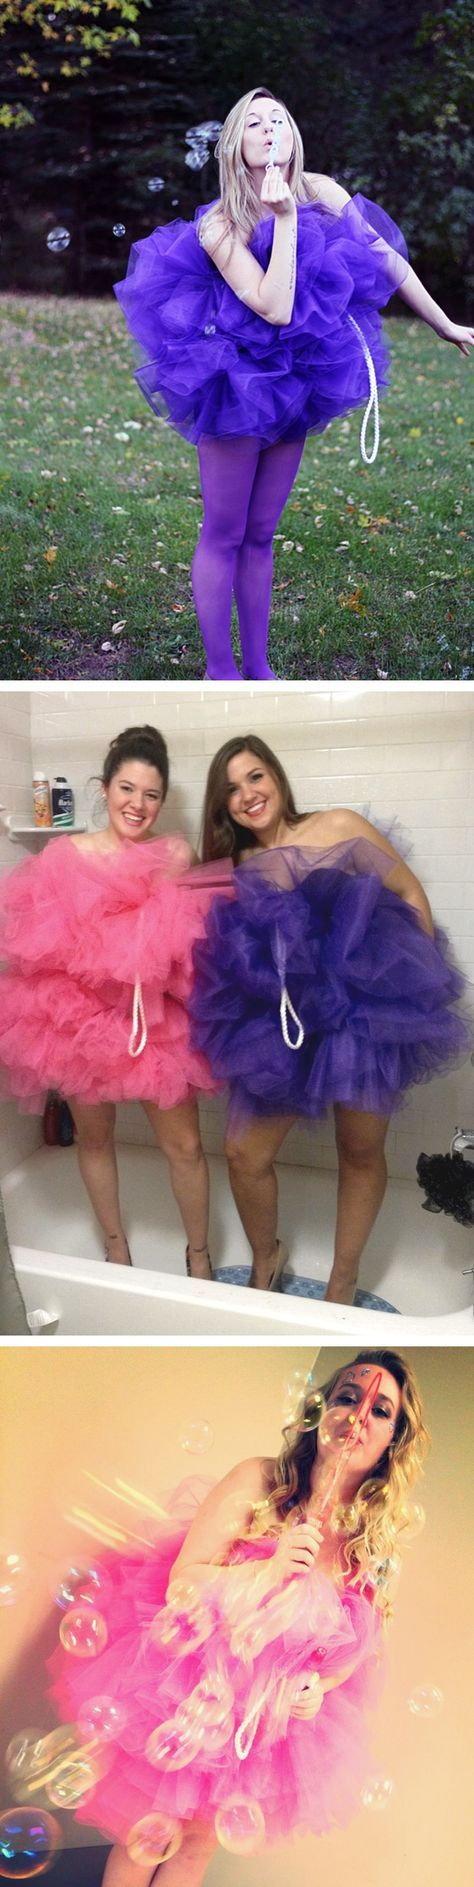 "DIY Shower Loofah / Pouf Costumes! Blow bubbles for the full ""sudsy"" effect of soap! Instructions!"